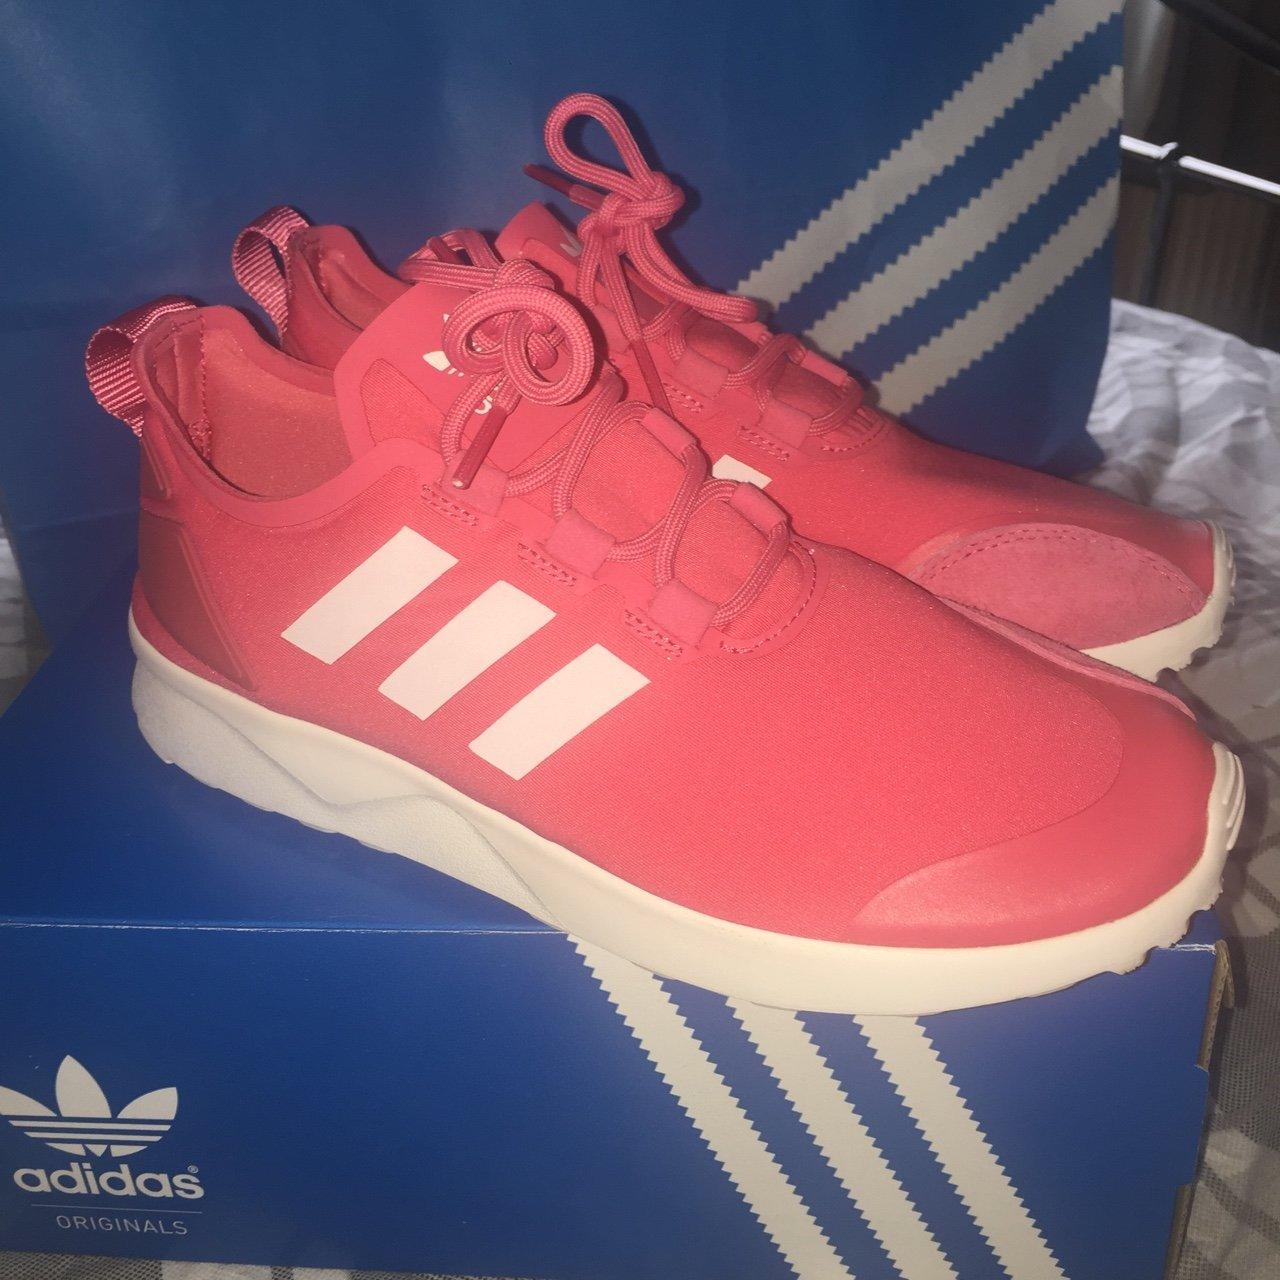 1bfe8c942d9f2 REDUCED PRICE   Adidas ZX Flux Adv Verve Trainers in Pink - Depop